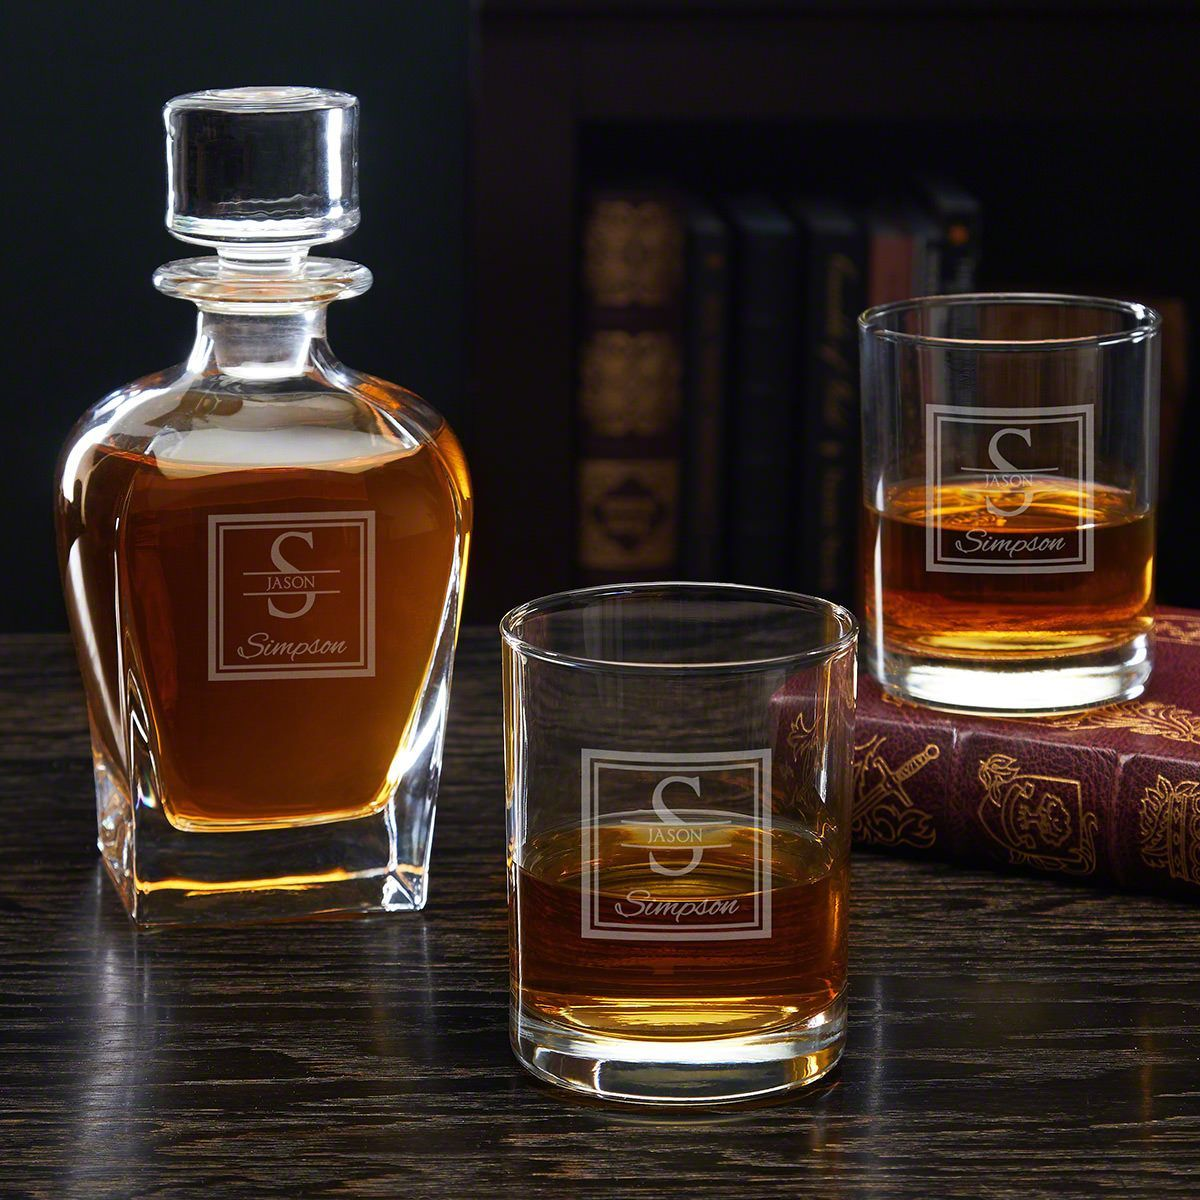 Oakhill Etched Decanter Set With Rocks Glasses Personalized Whiskey Decanter Whiskey Decanter Set Whiskey Decanter